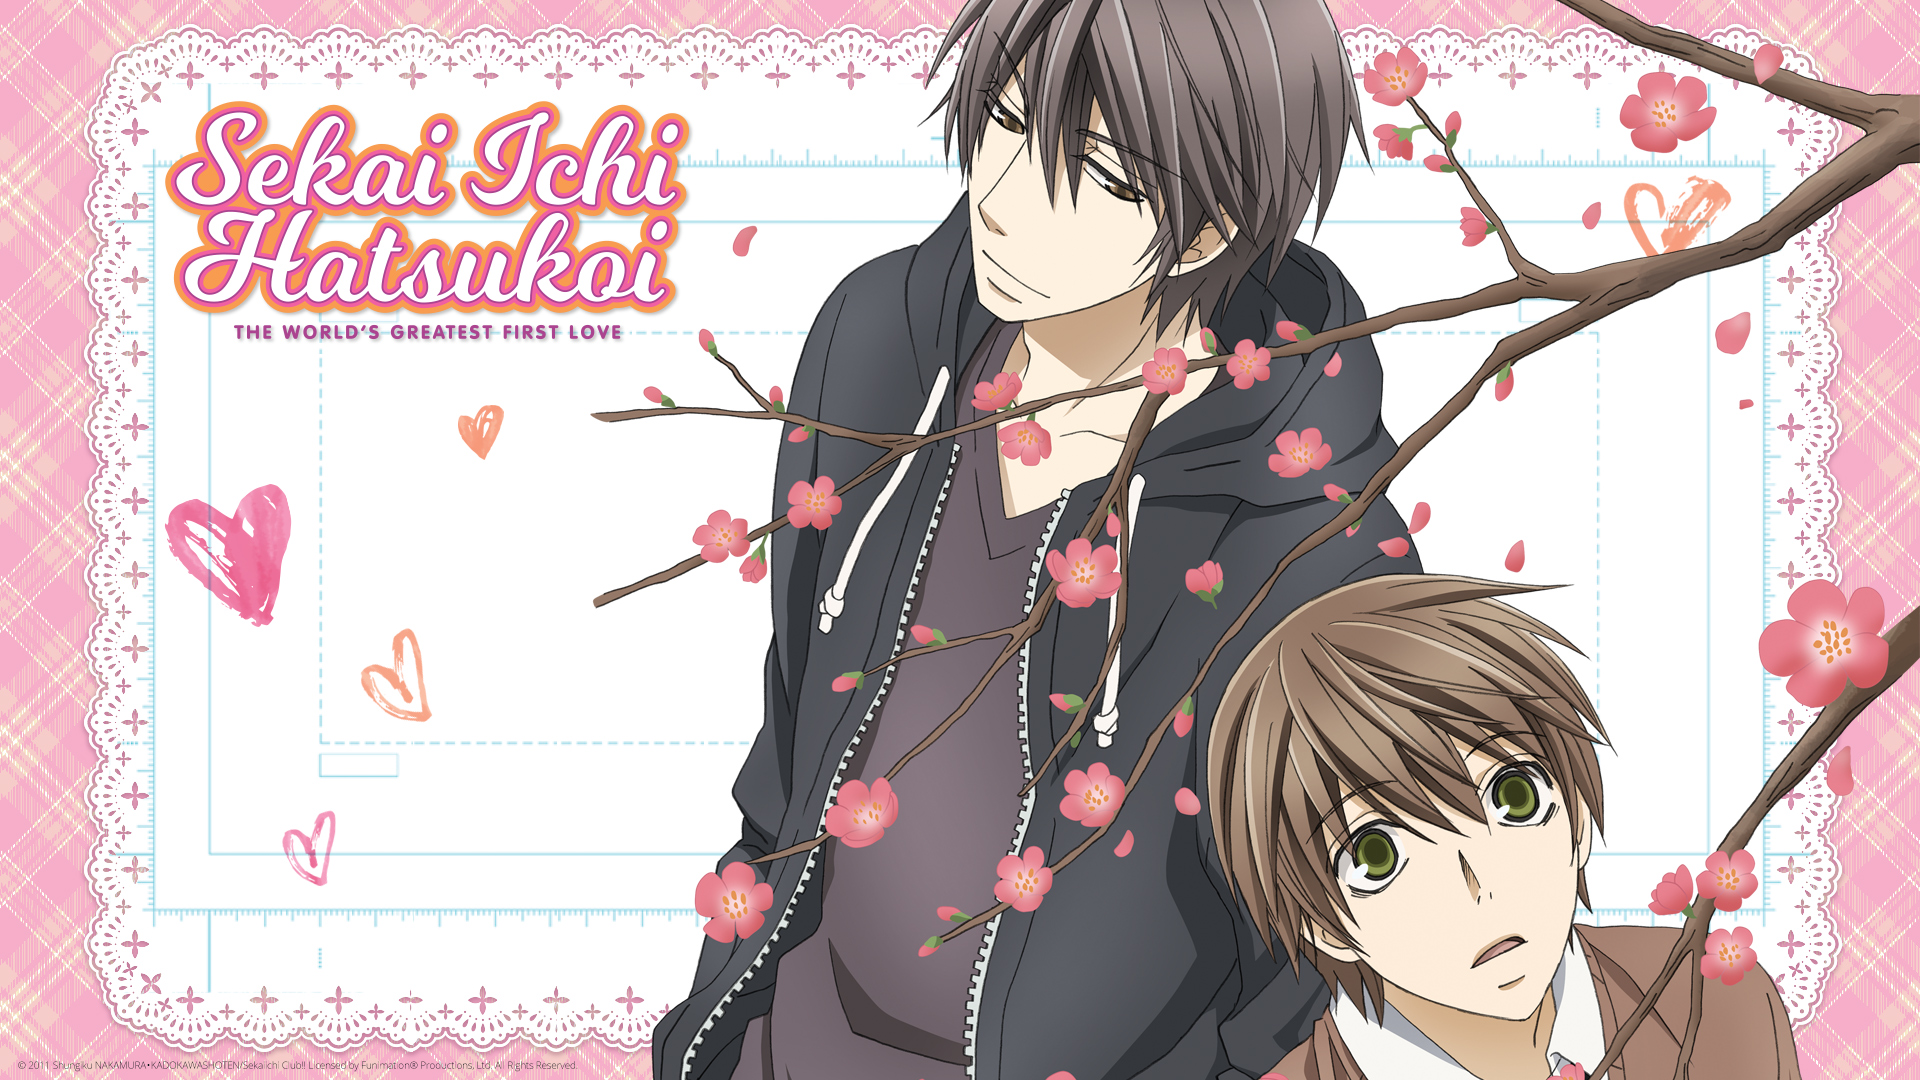 Sekai-ichi Hatsukoi Wallpapers - Wallpaper Cave